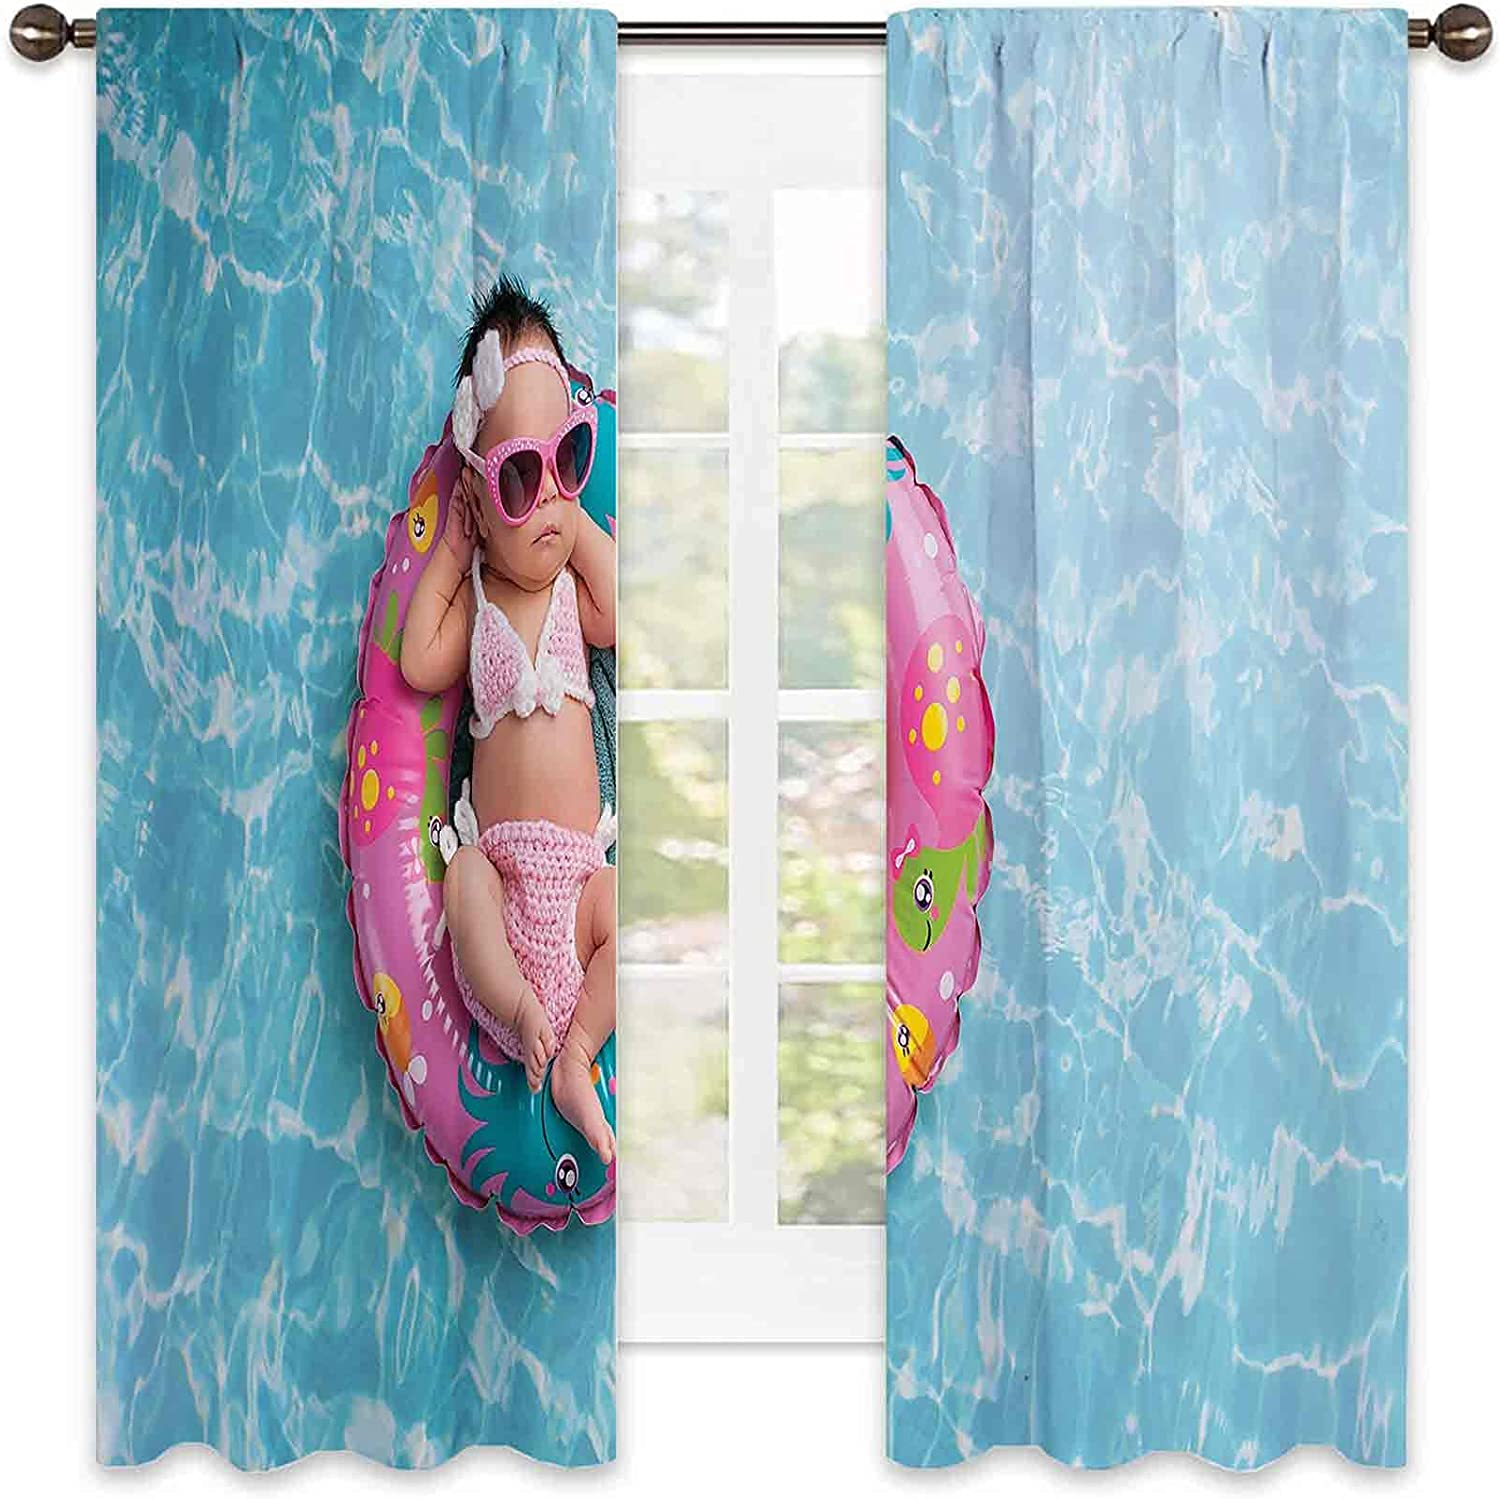 Baby Wear Resistant Color Fresno Mall Curtain Nine o New product type Days Sleeping Girl Old